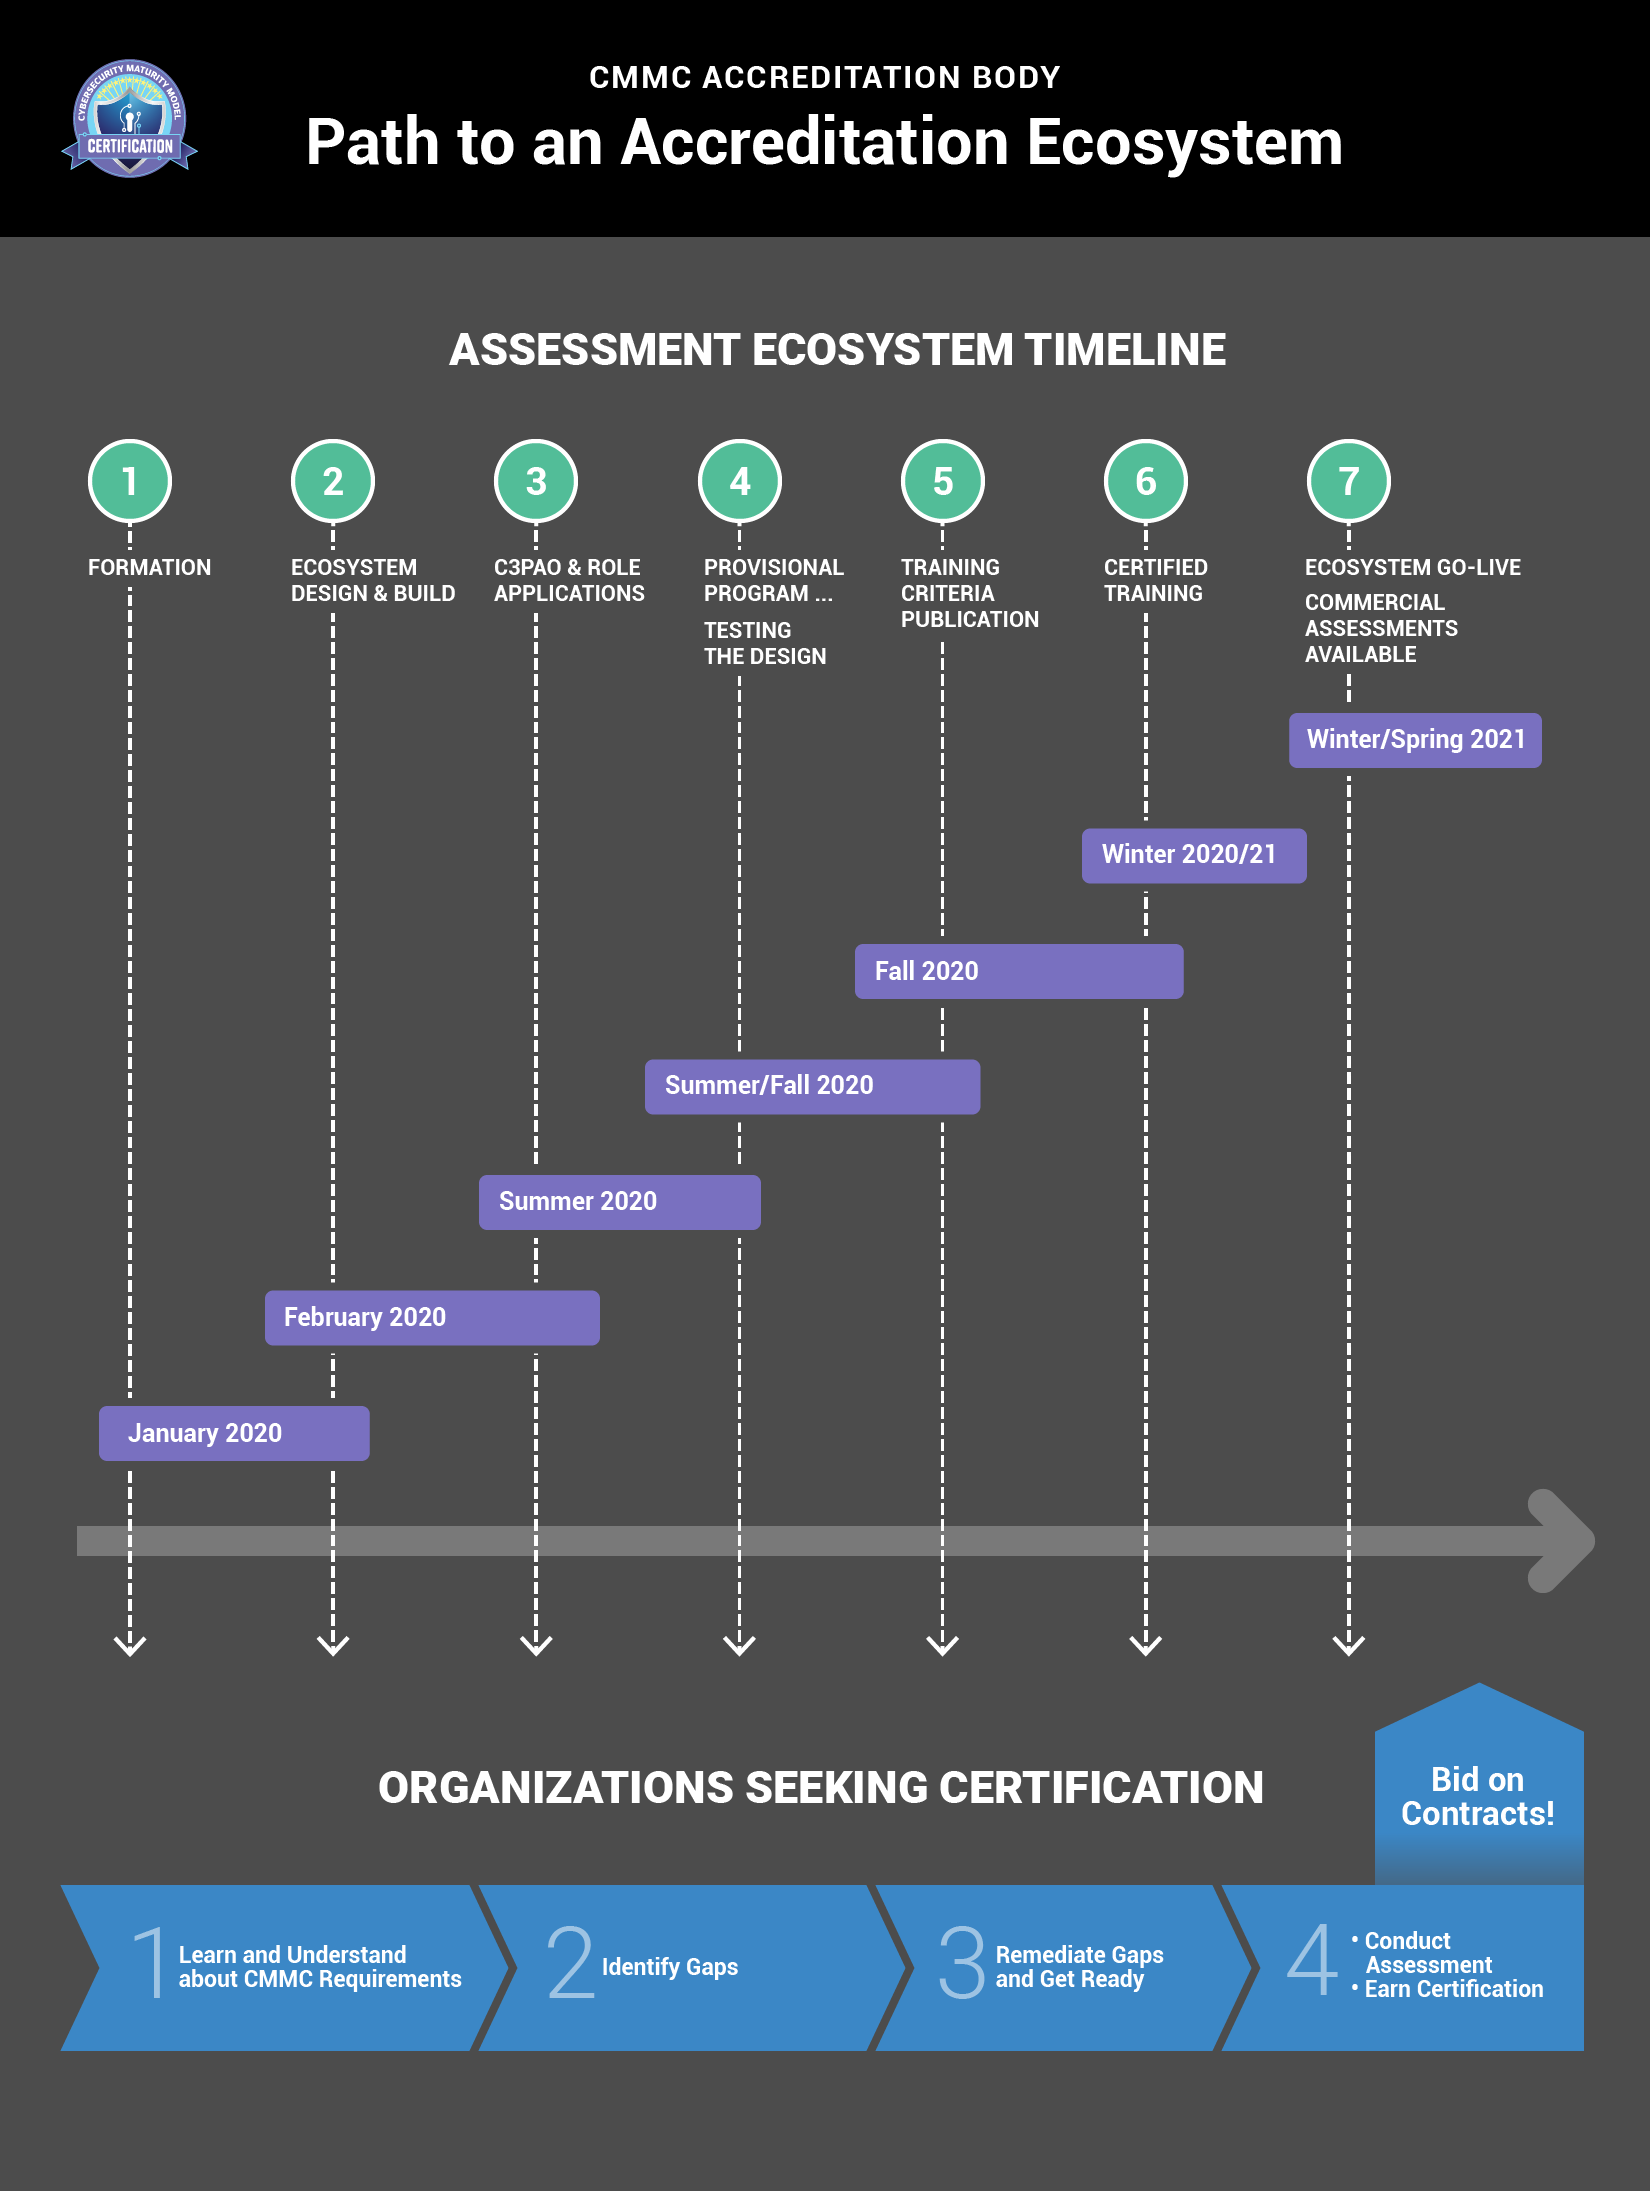 Path to an Accreditation Ecosystem infographic